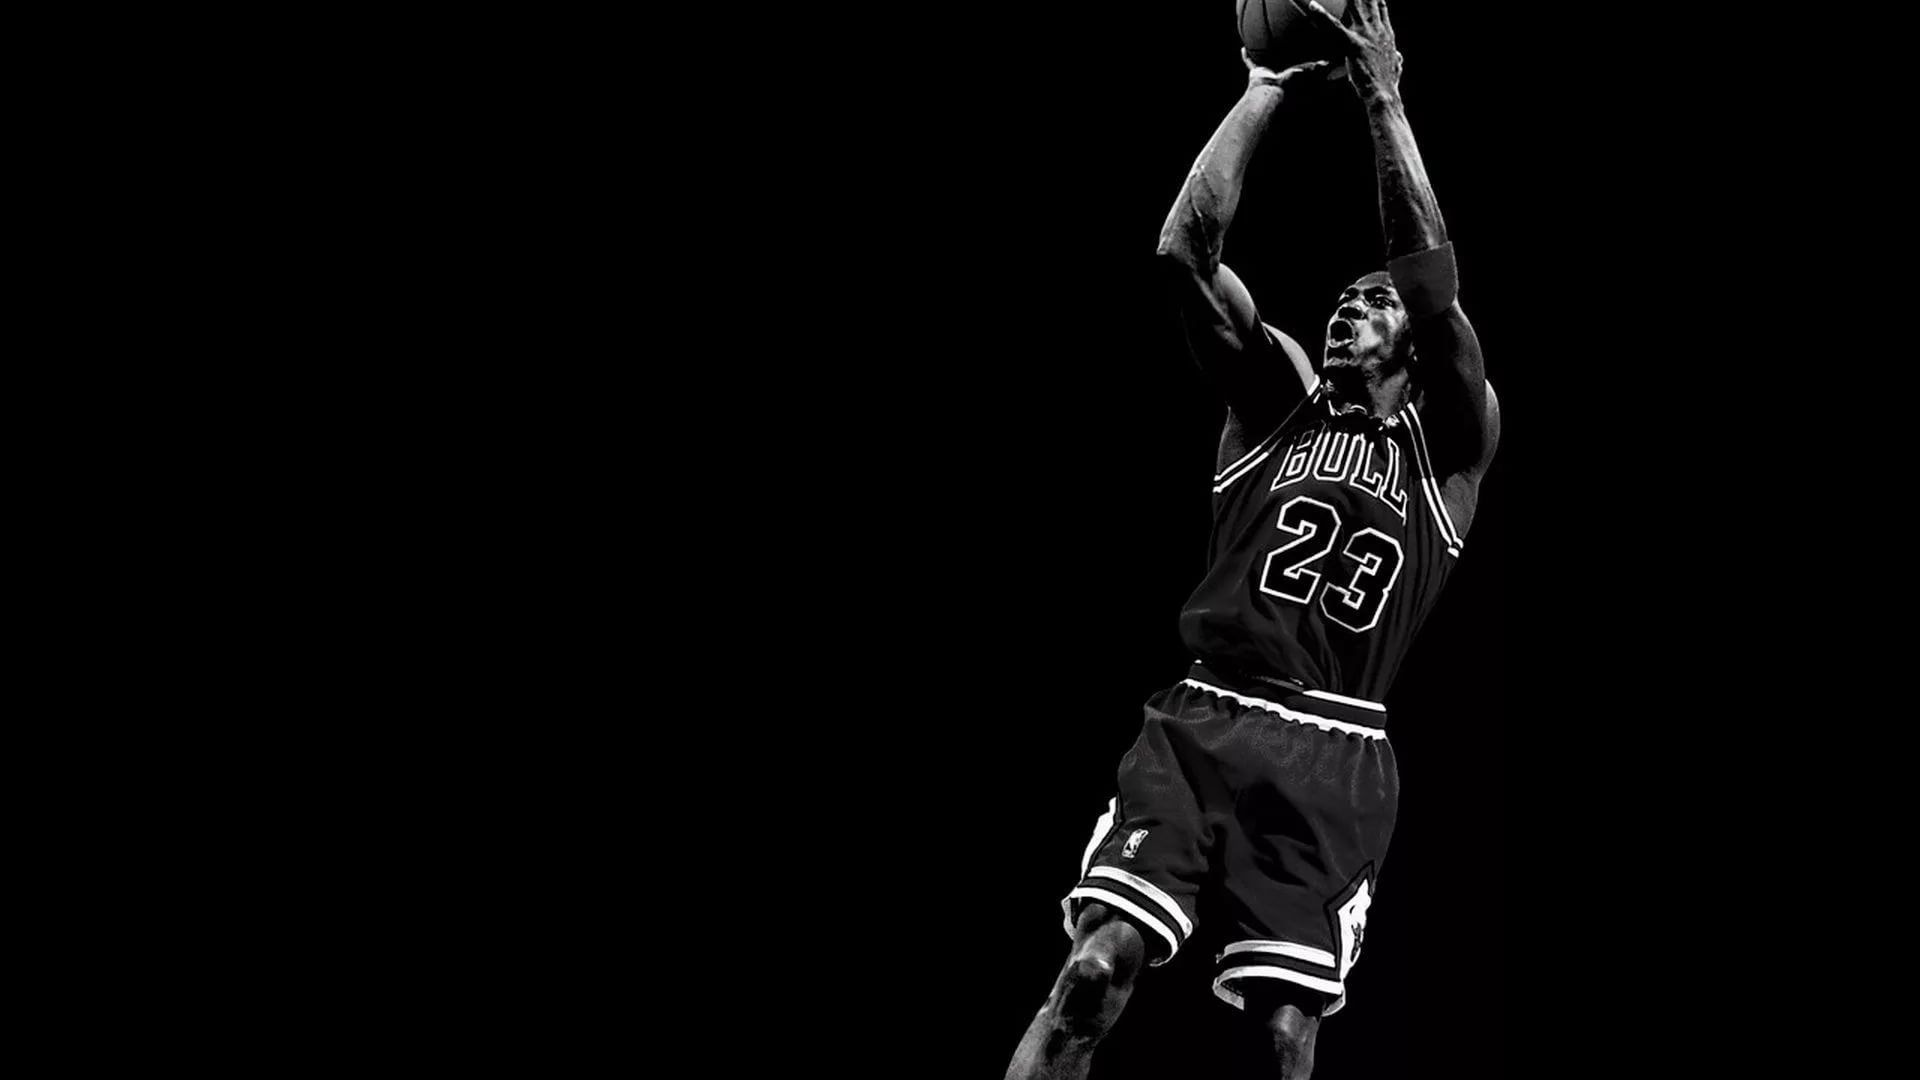 Jumpman download free wallpapers for pc in hd